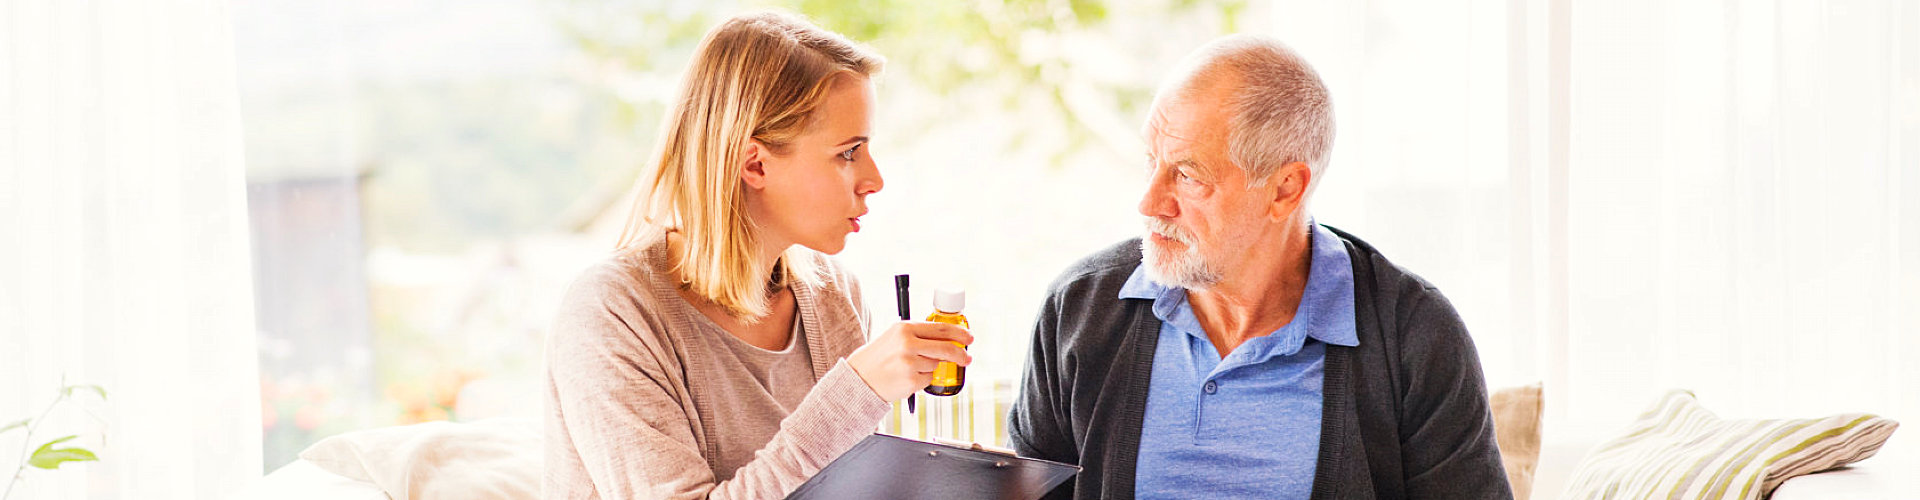 caregiver and old man talking